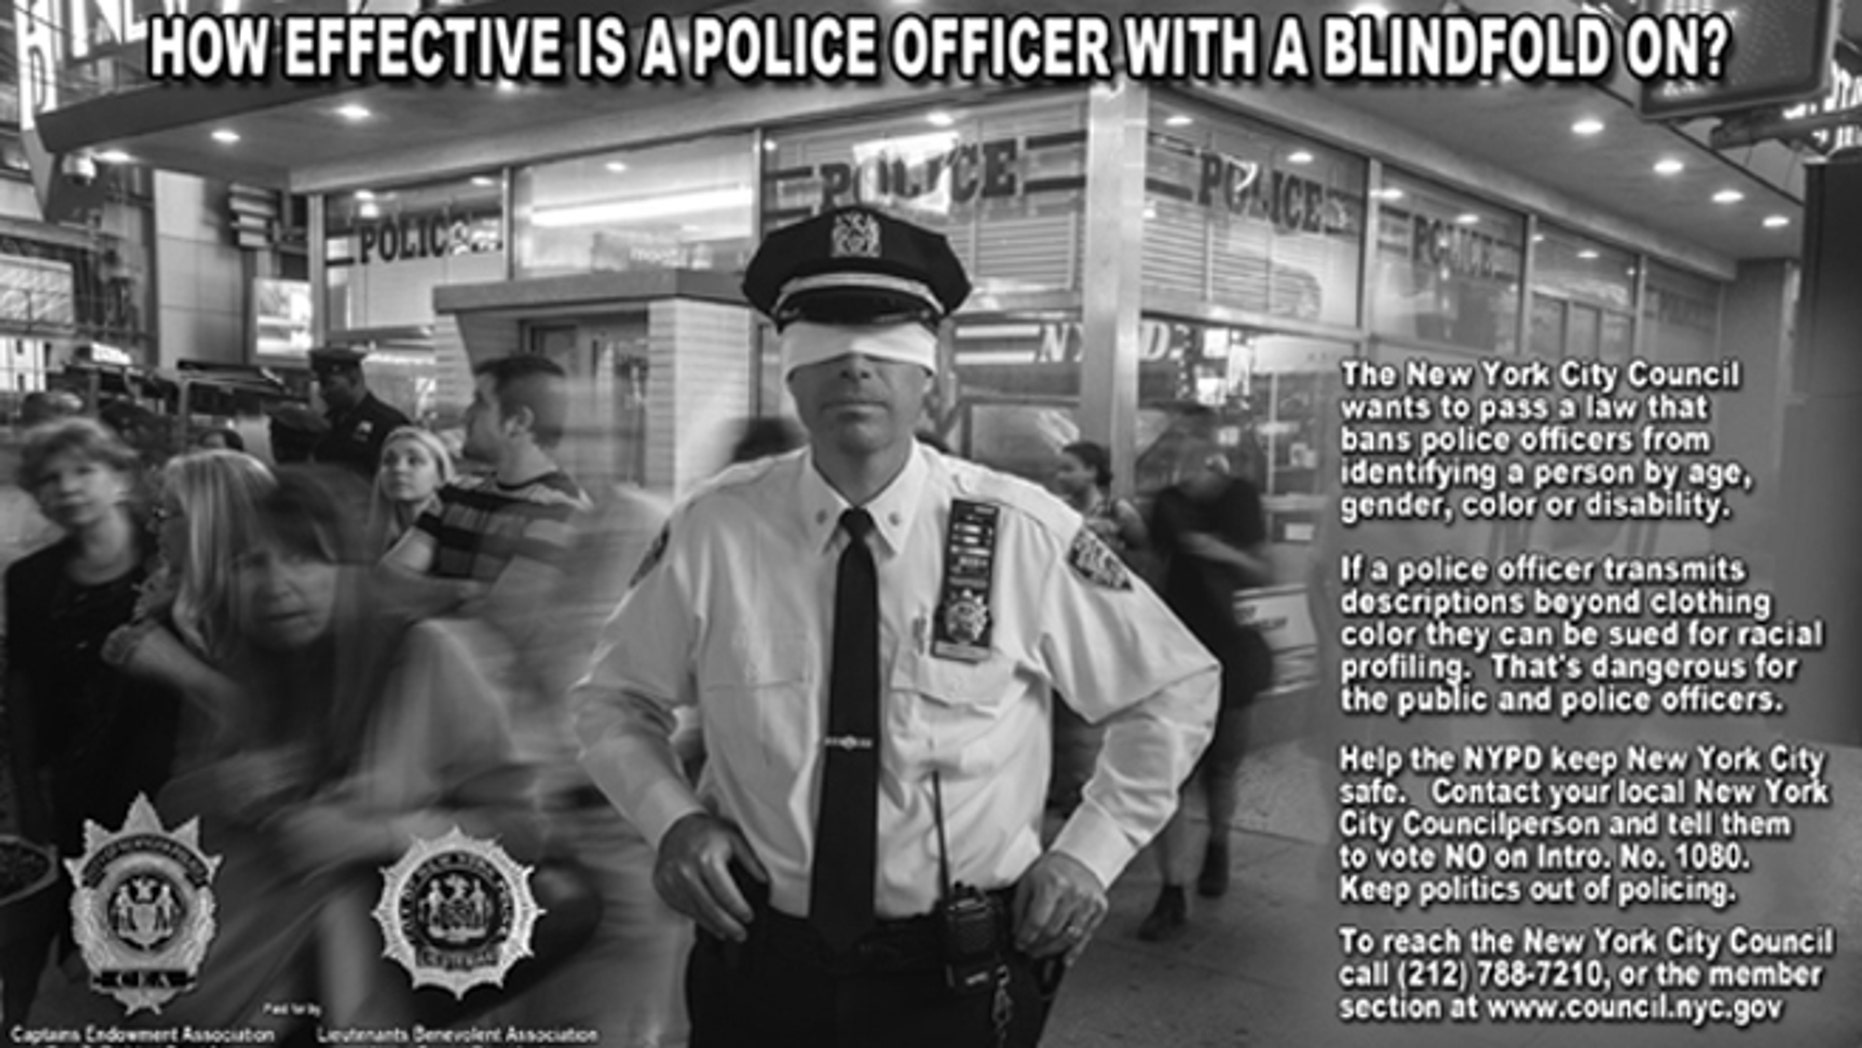 Shown here is an ad from New York City police unions opposing a new proposal they say will limit their ability to do their jobs.